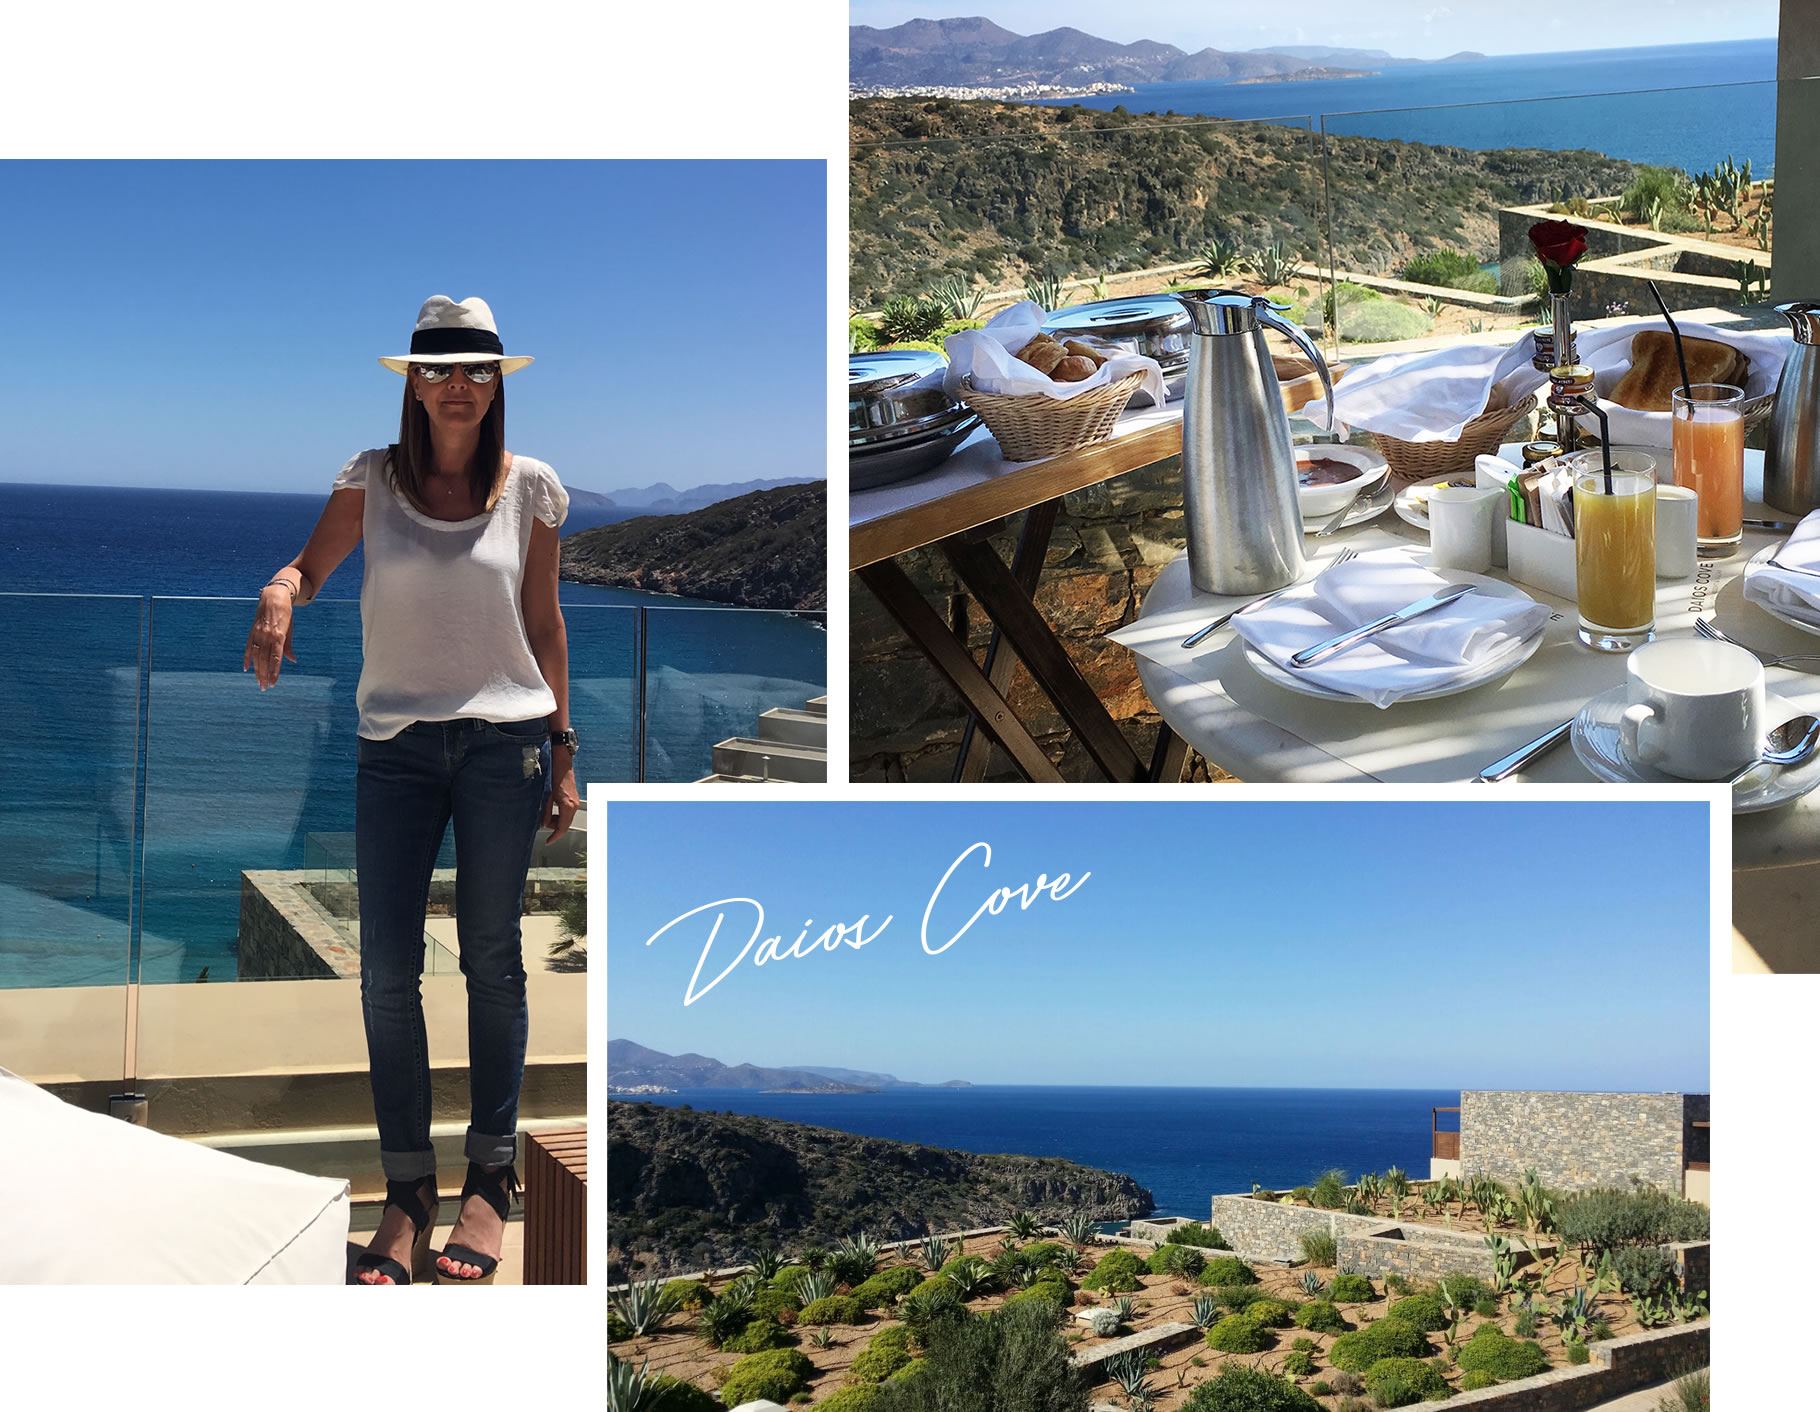 Daios Cove Crete - Breakfast and views